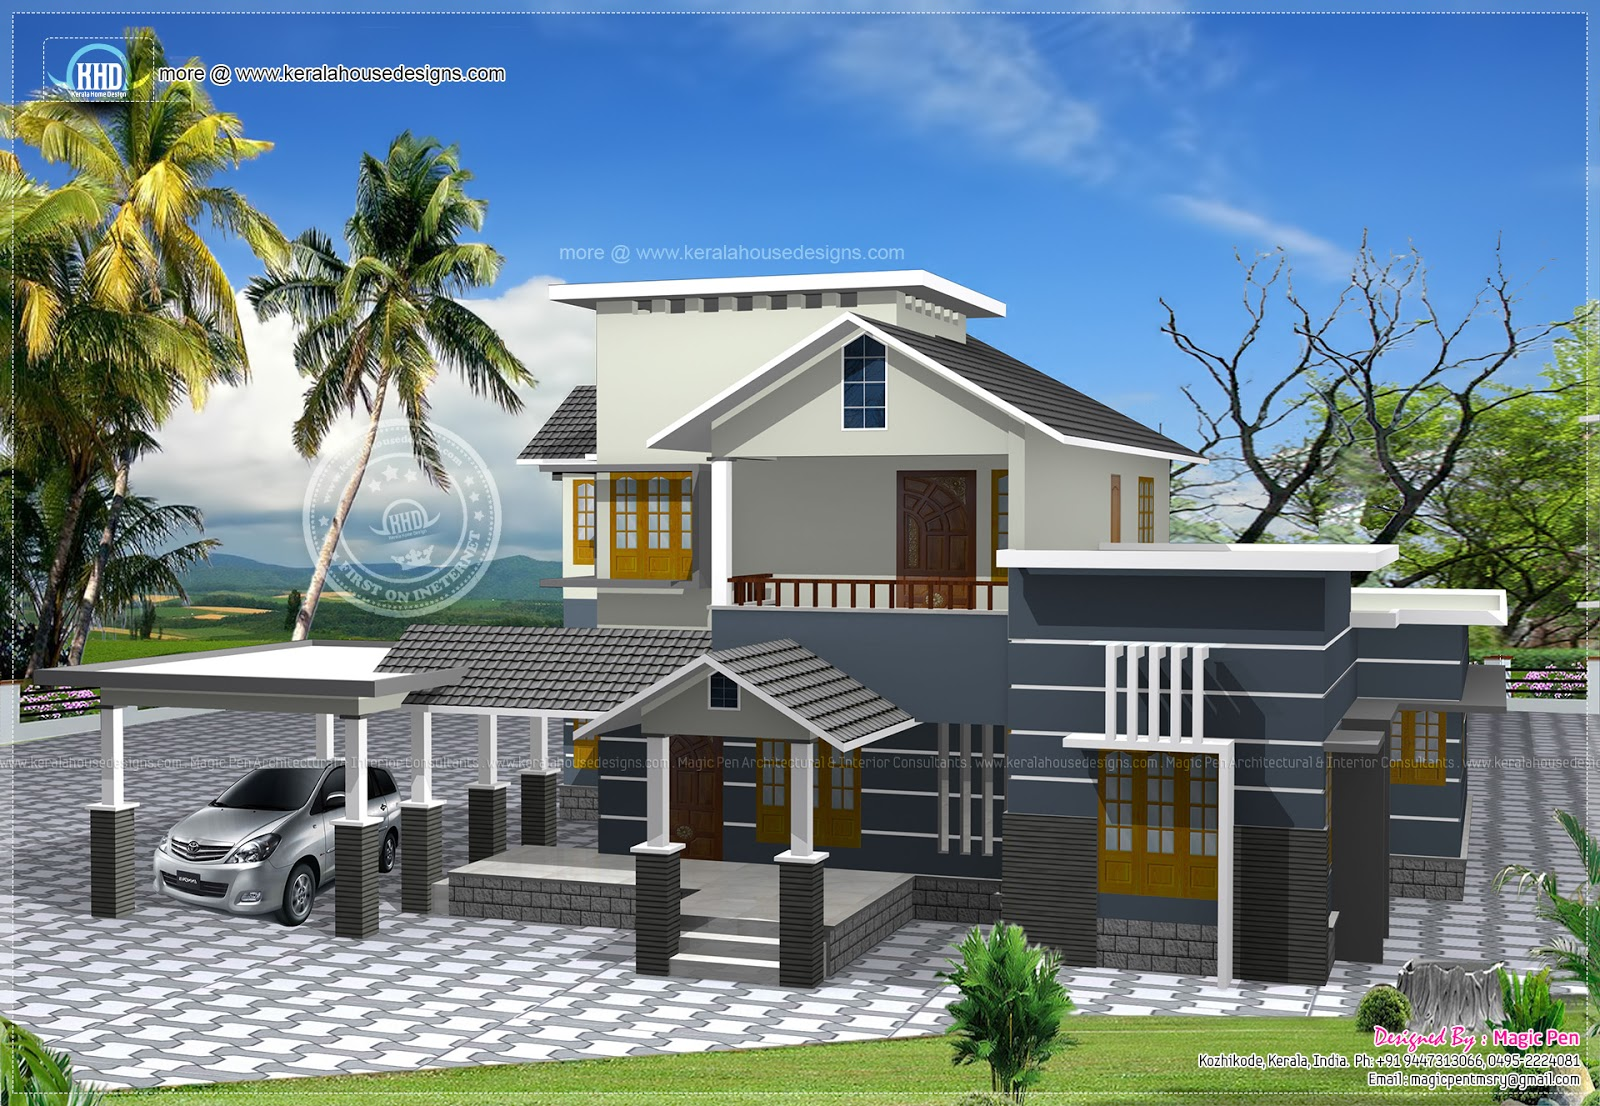 Double storied residential rendering kerala home design for Kerala home designs photos in double floor